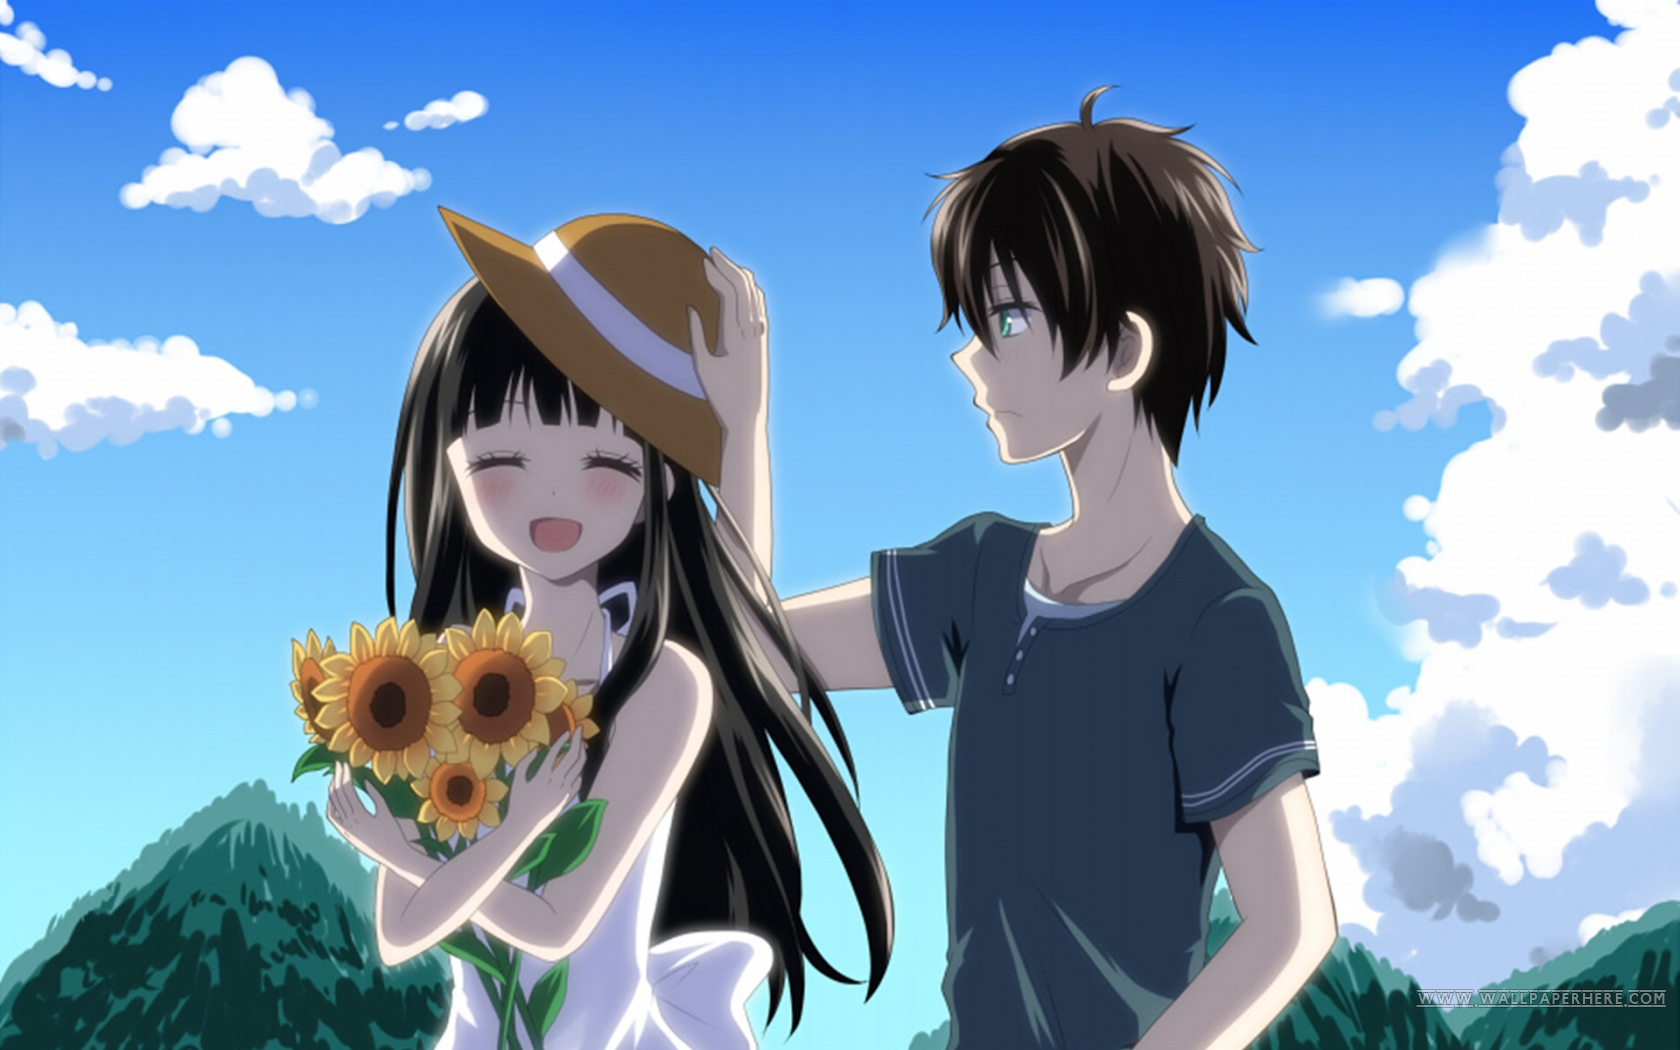 download kimi ni todoke wallpapers